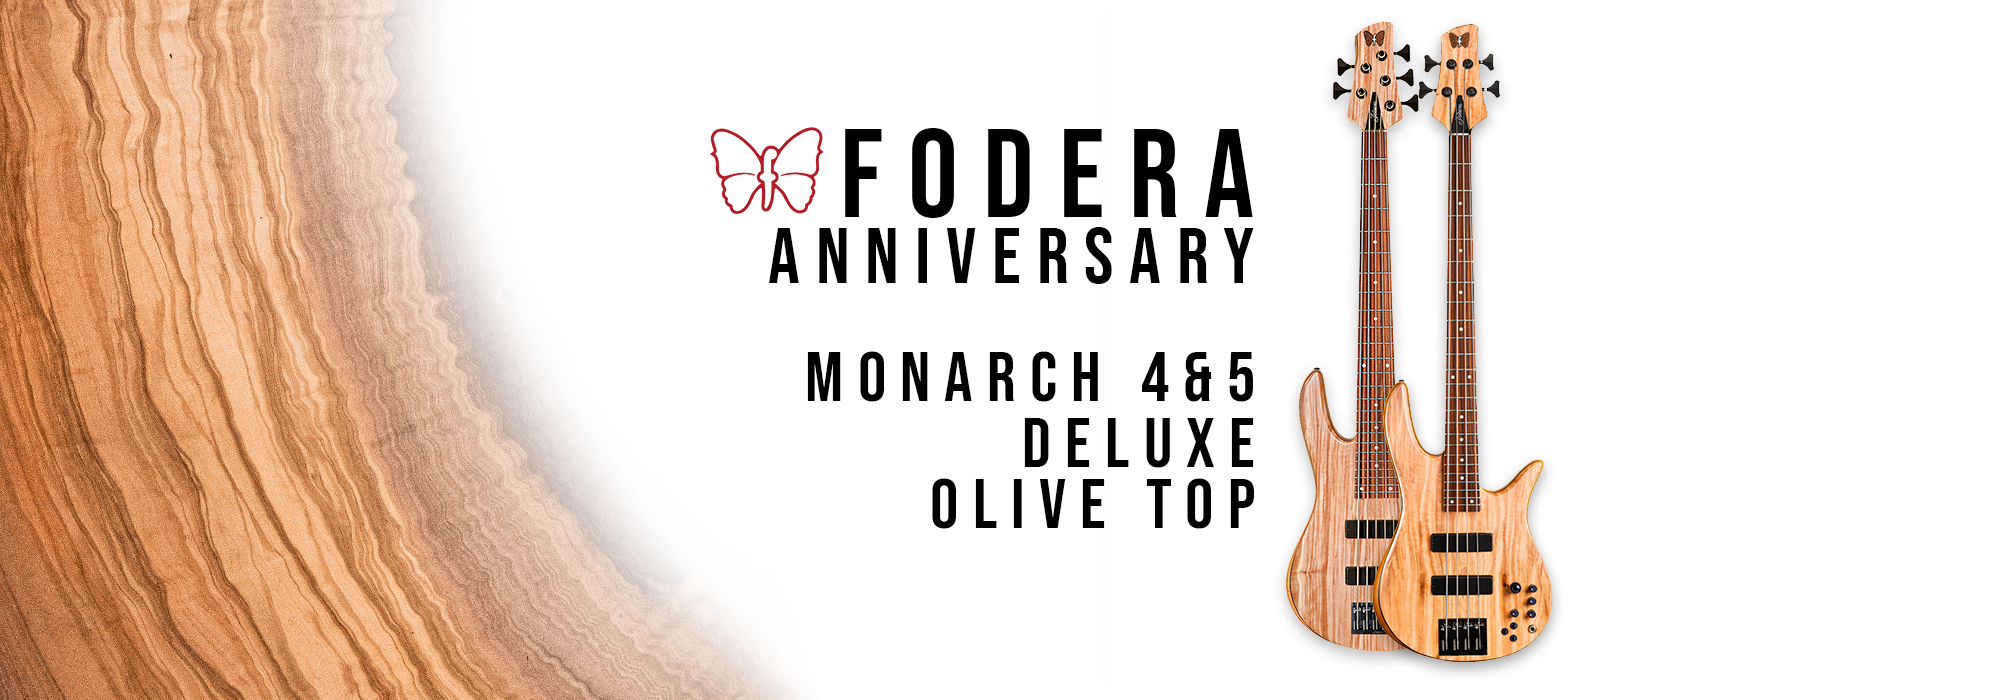 Fodera Anniversary Monarch Bass Olive Top Banner